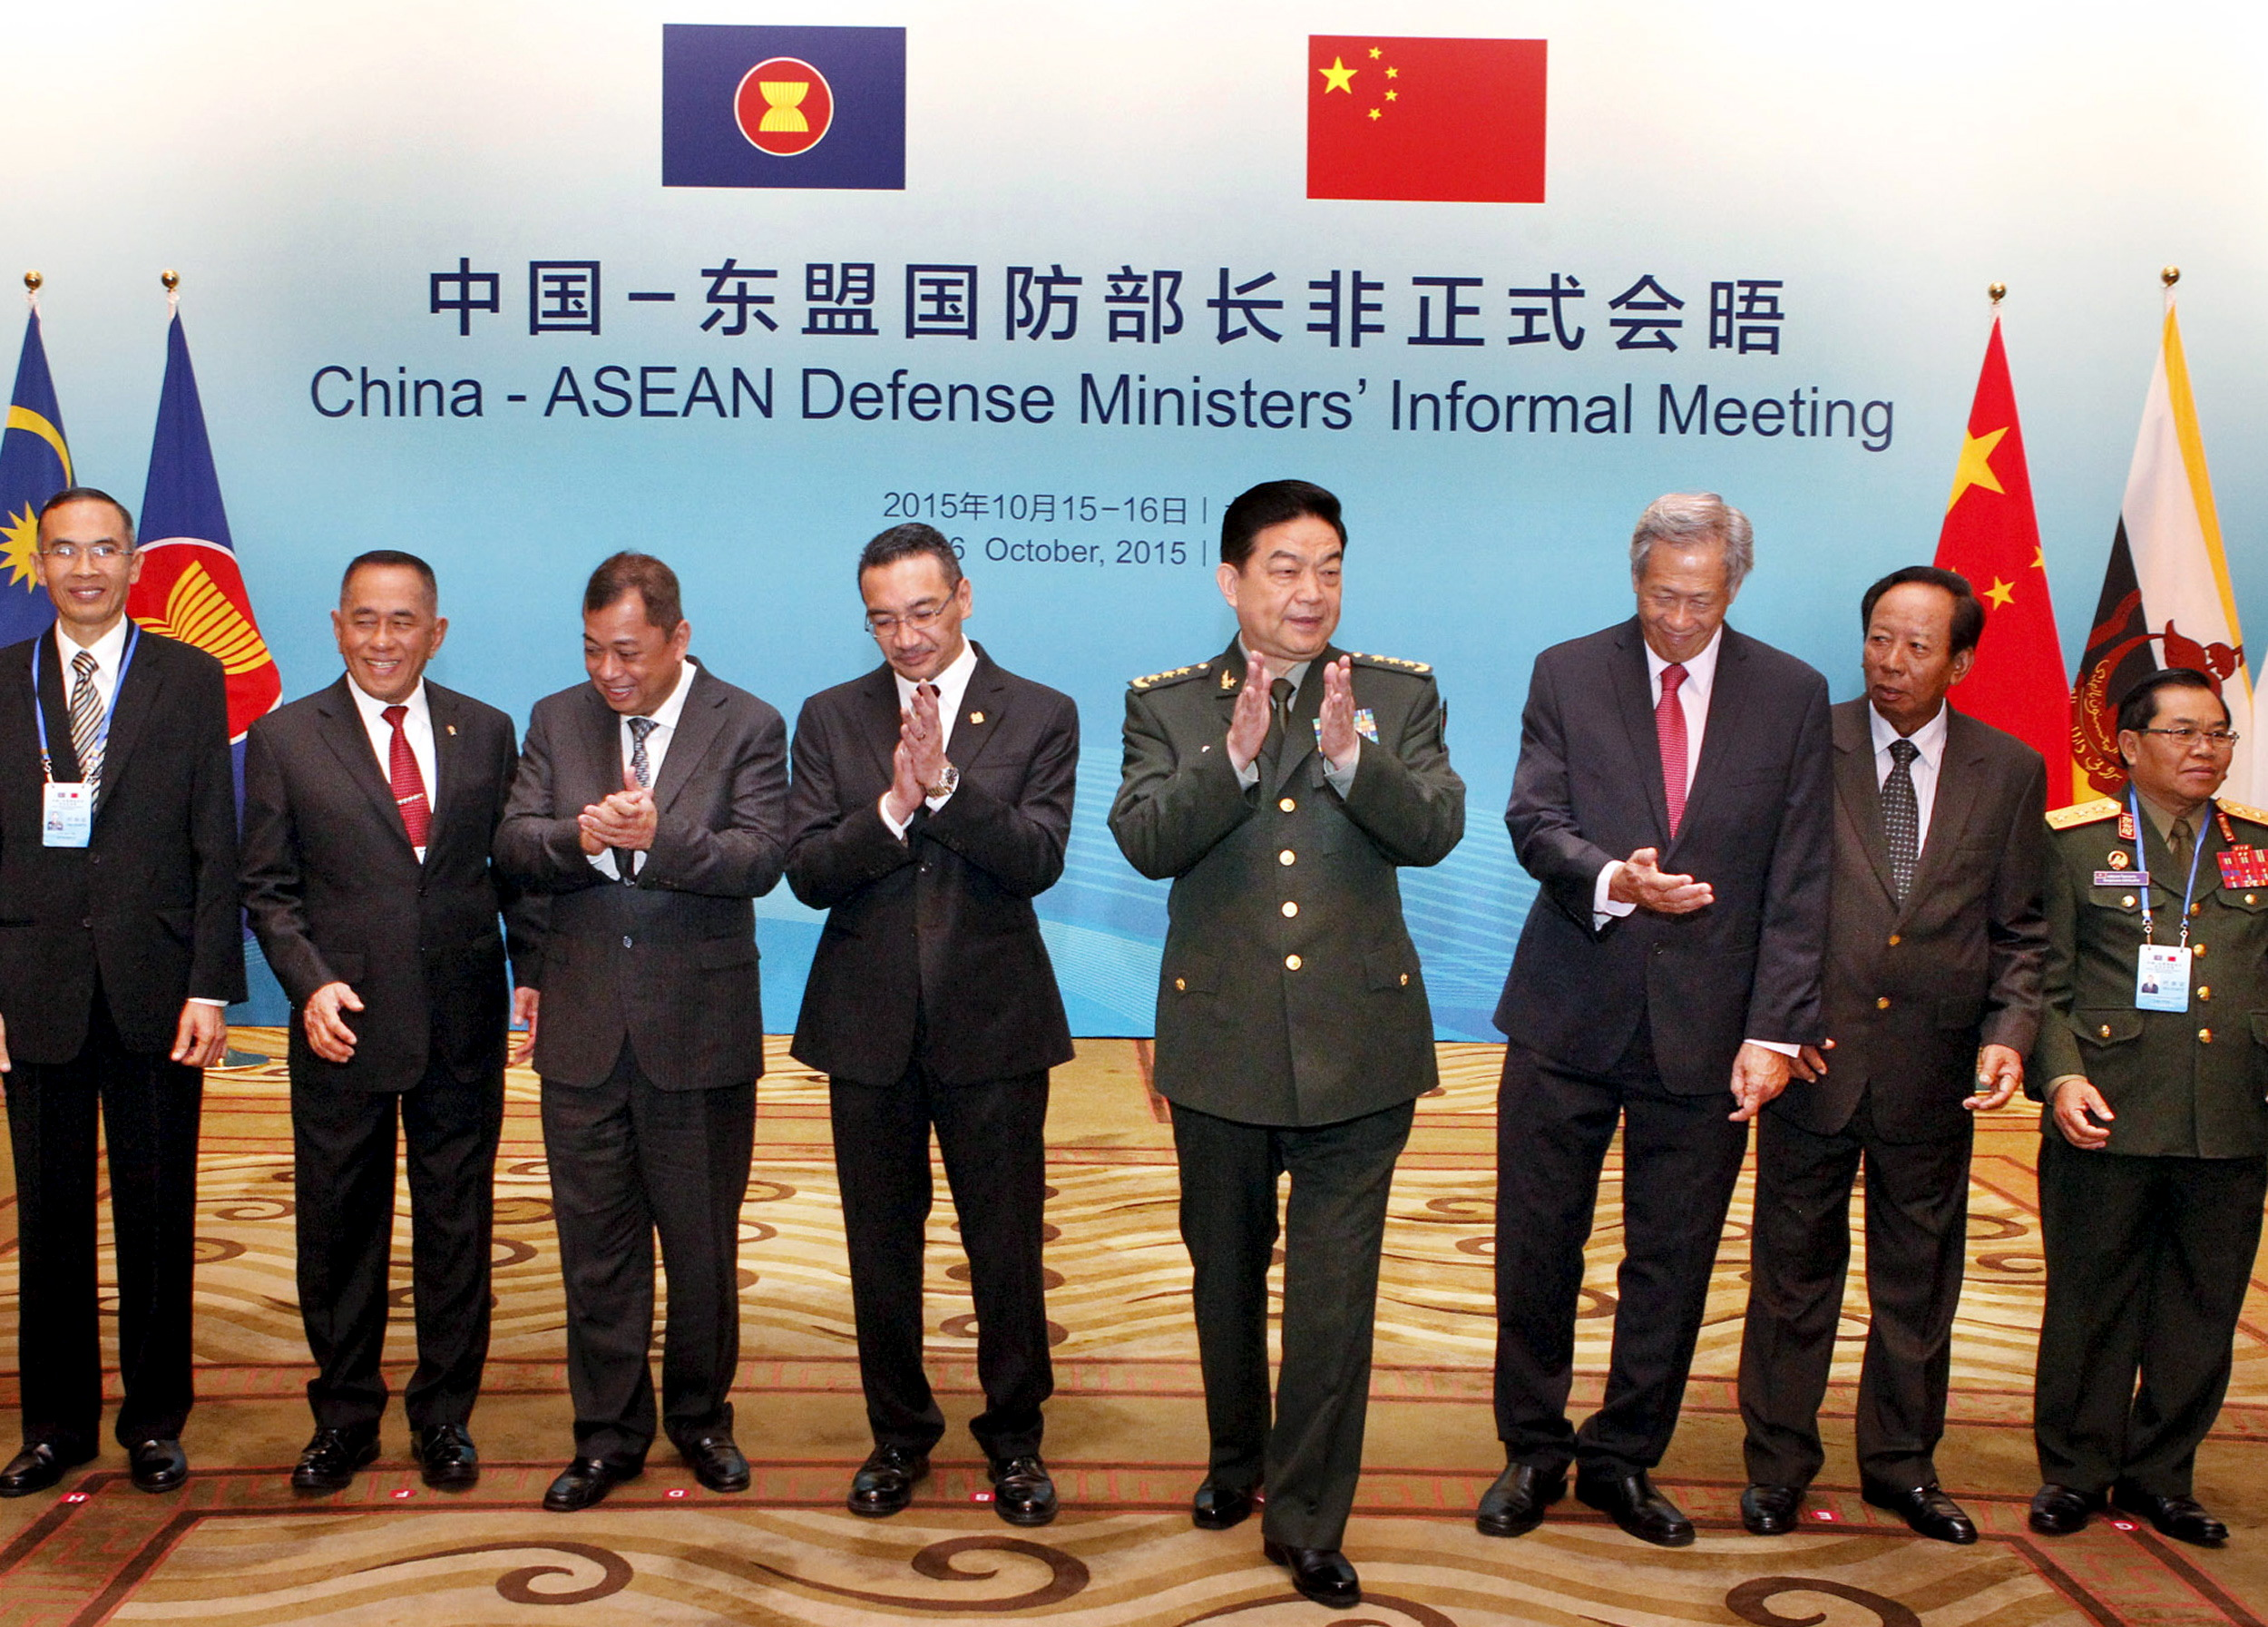 Chinese Defense Minister Chang Wanquan (fourth from right) claps next to his counterparts from the Southeast Asian Nations (ASEAN) during the China-ASEAN Defense Ministers' Informal Meeting in Beijing, China, October 16, 2015.